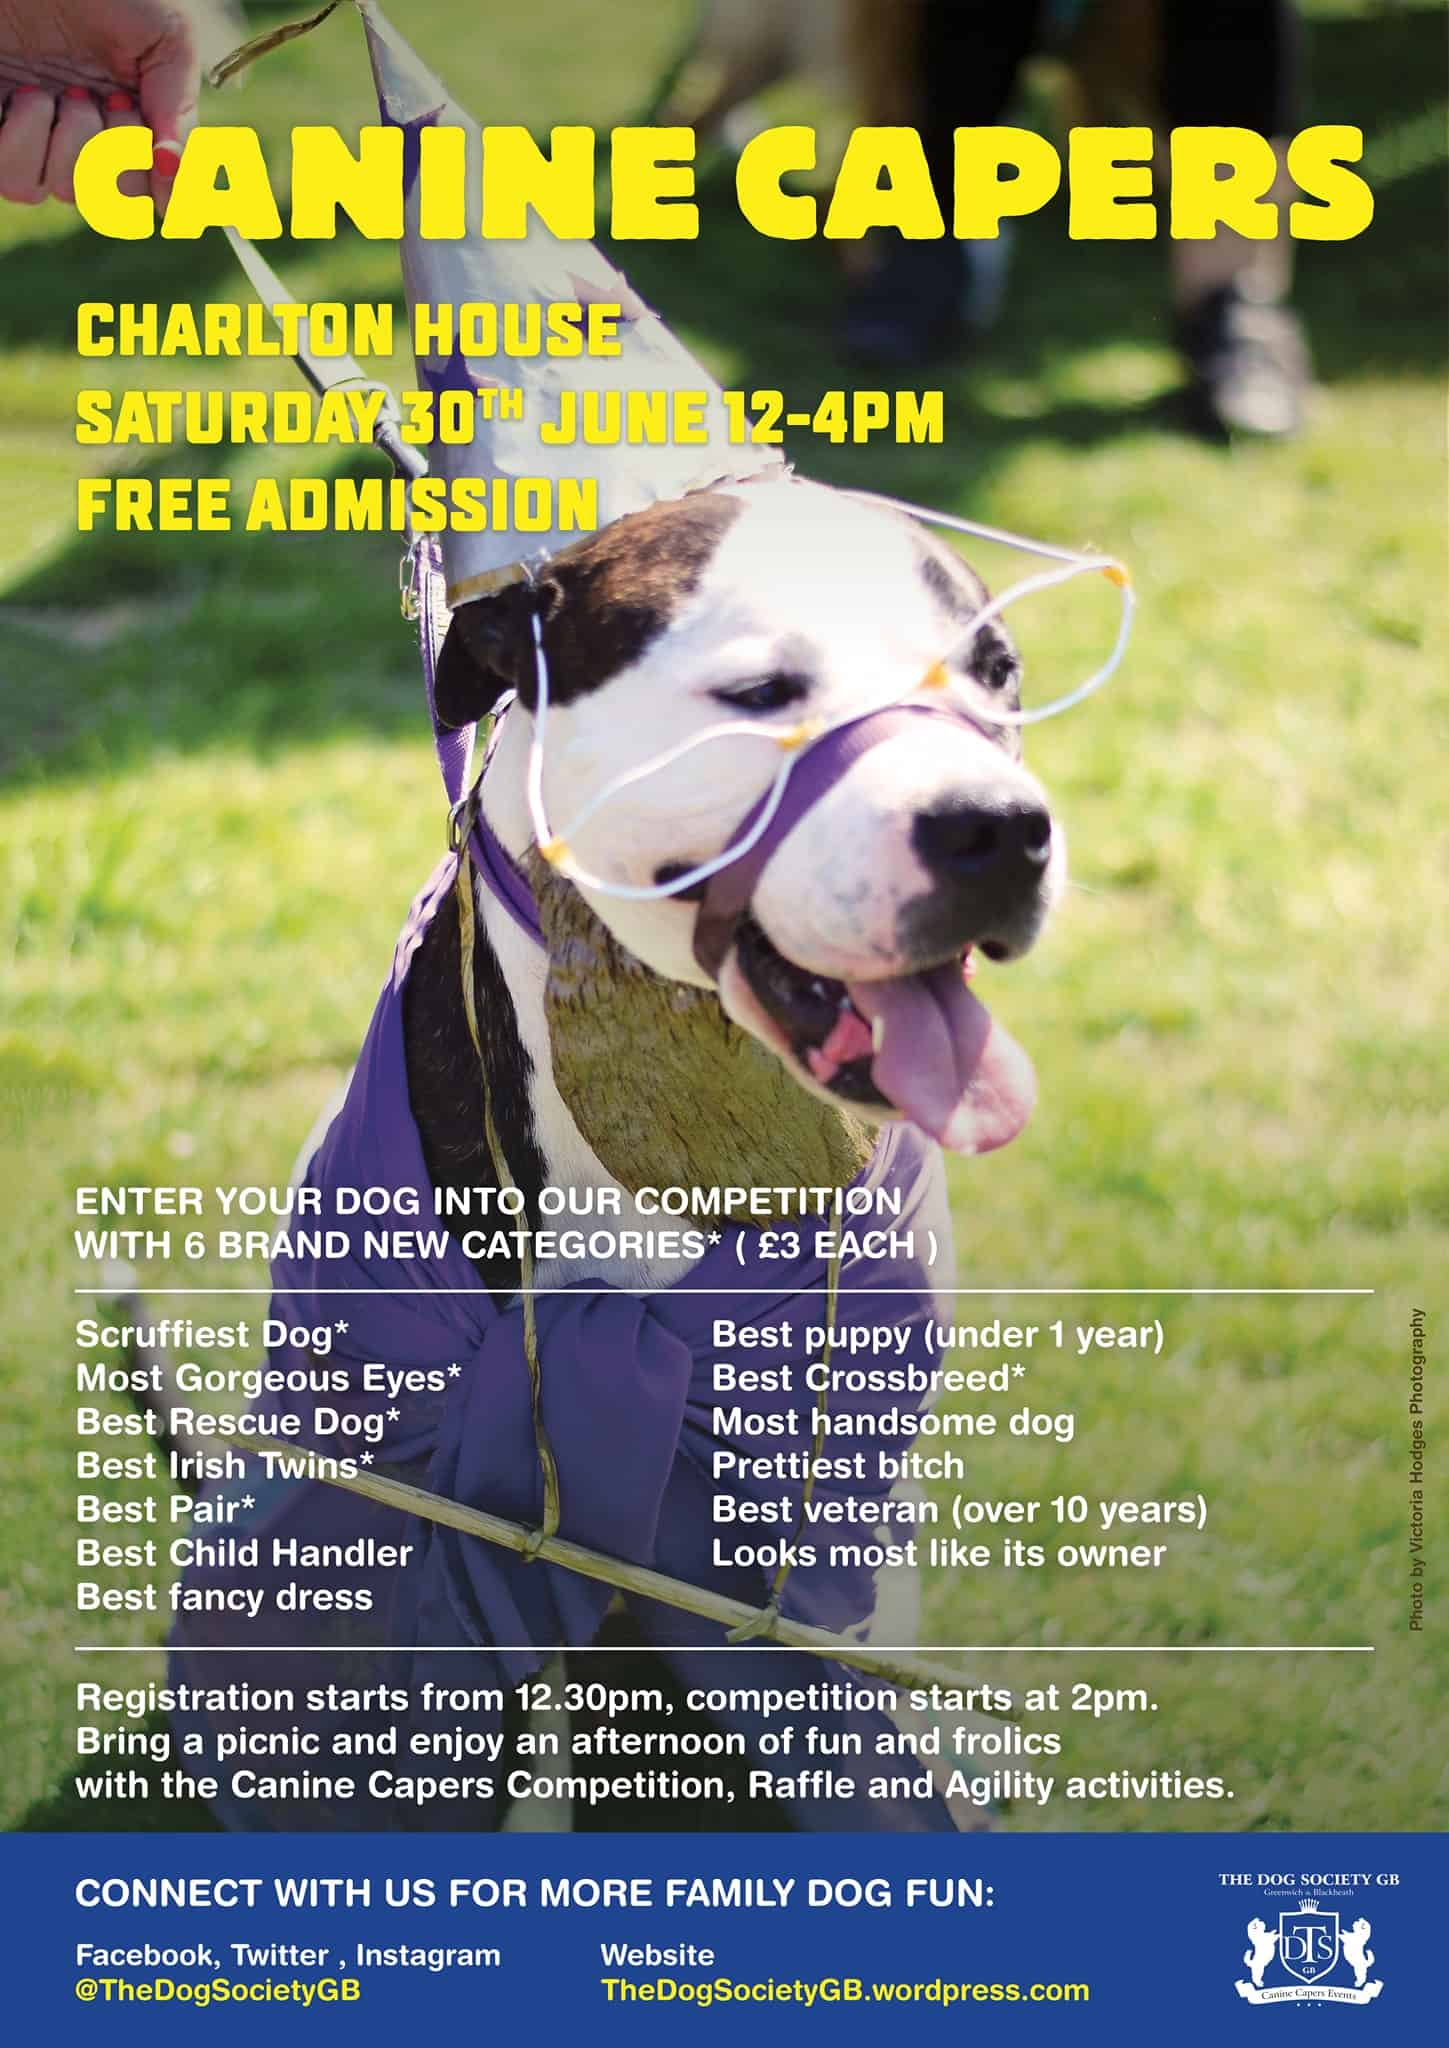 London Dog Events - CANINE CAPERS CHARLTON HOUSE | JUNE 2018